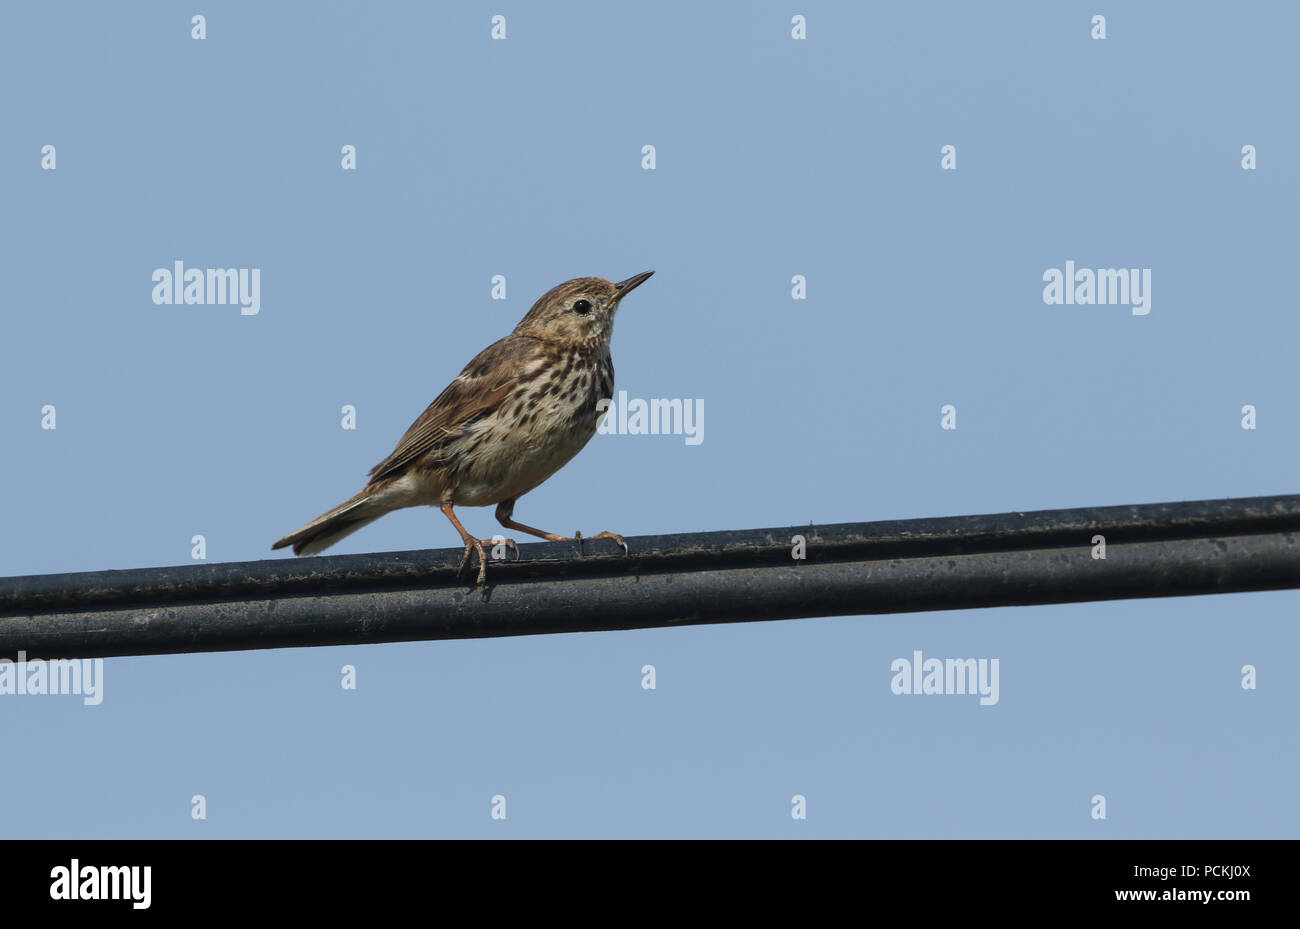 A pretty Meadow Pipit (Anthus pratensis) perching on a cable against a blue sky. Stock Photo